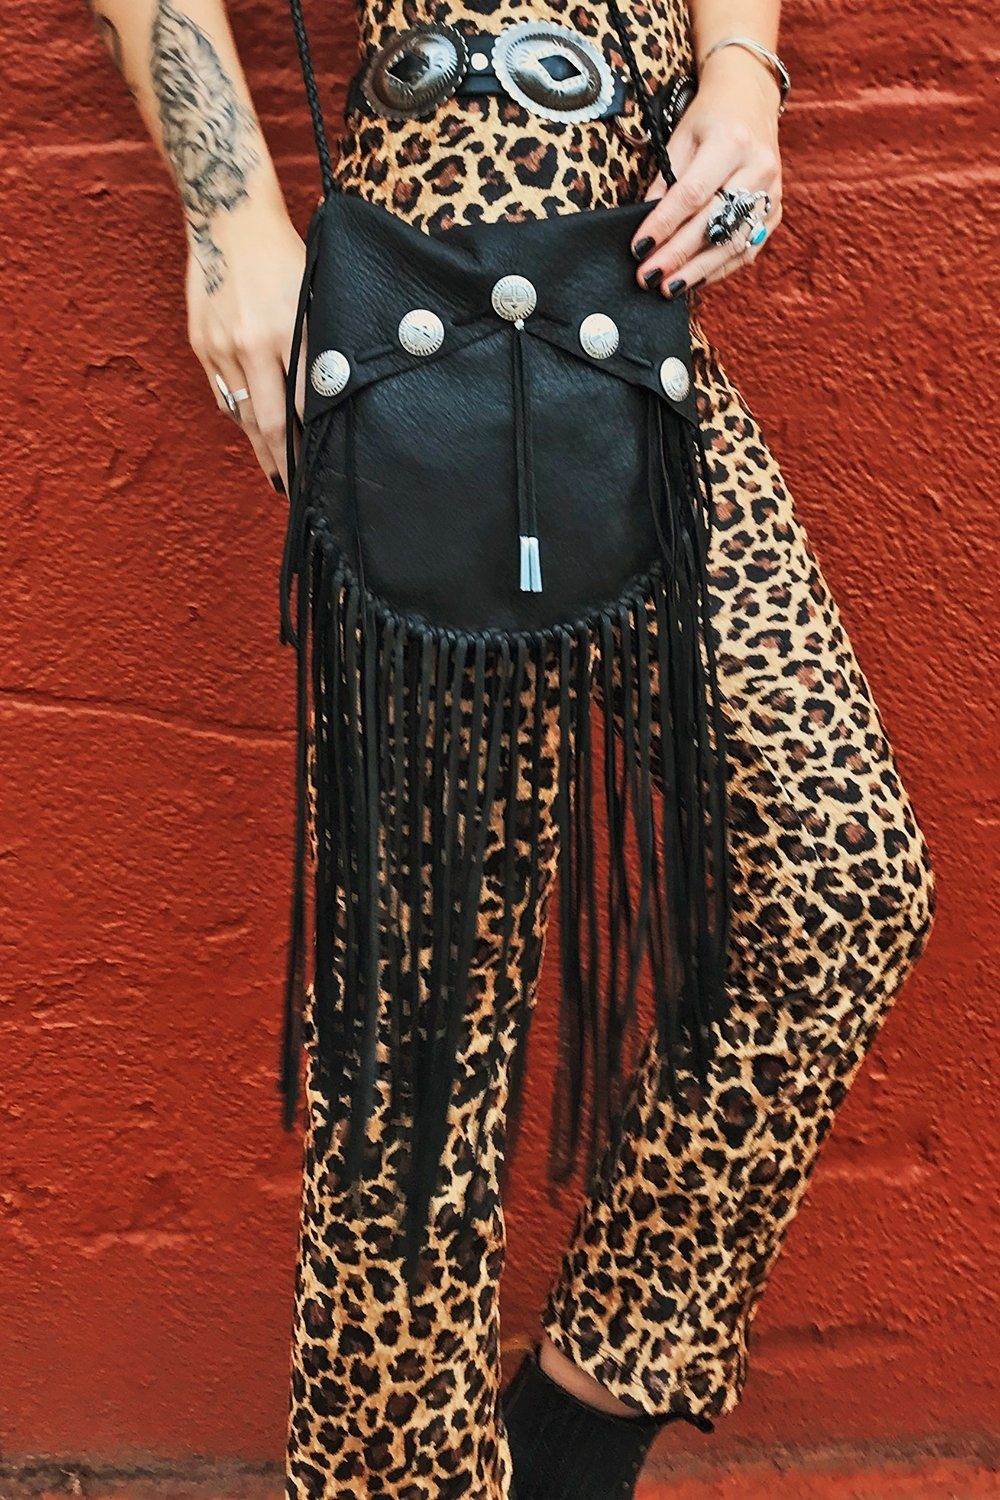 The Southwestern Concho Fringe Bag Handcrafted by Black Wolff Leather